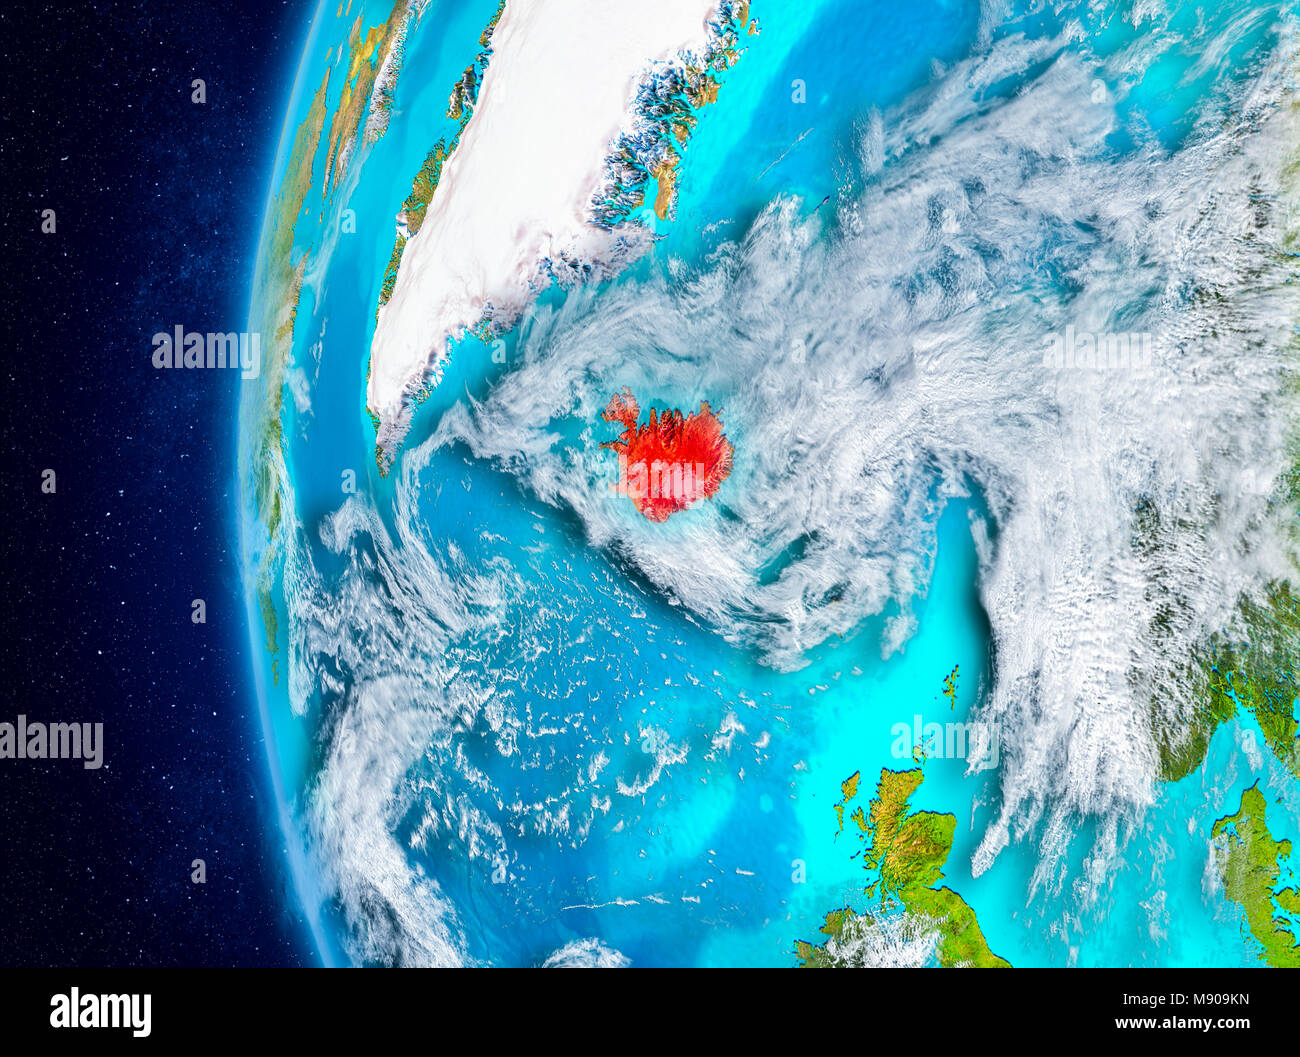 Iceland on globe stock photos iceland on globe stock images page map of iceland as seen from space on planet earth with clouds and atmosphere 3d gumiabroncs